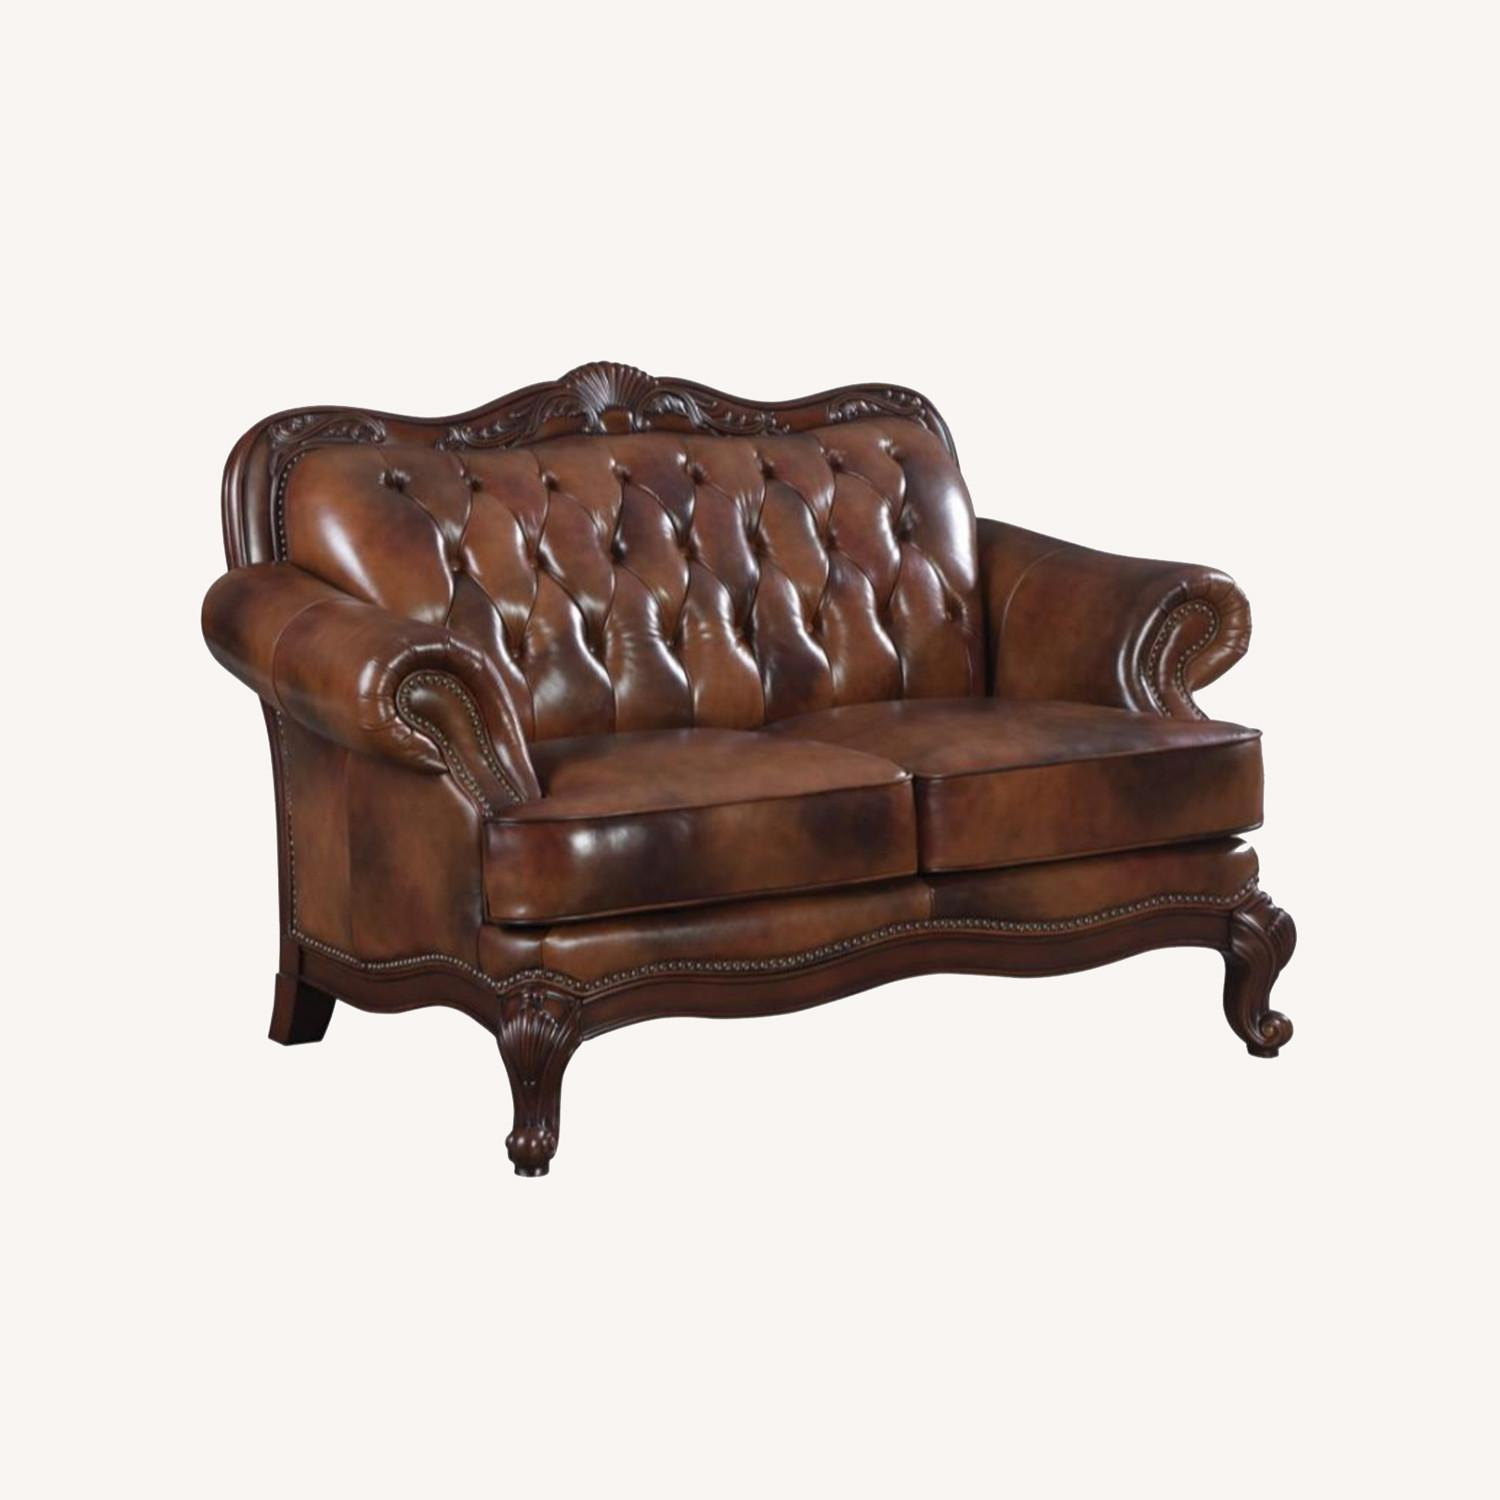 Loveseat In Tri-Tone Leather Finish - image-3